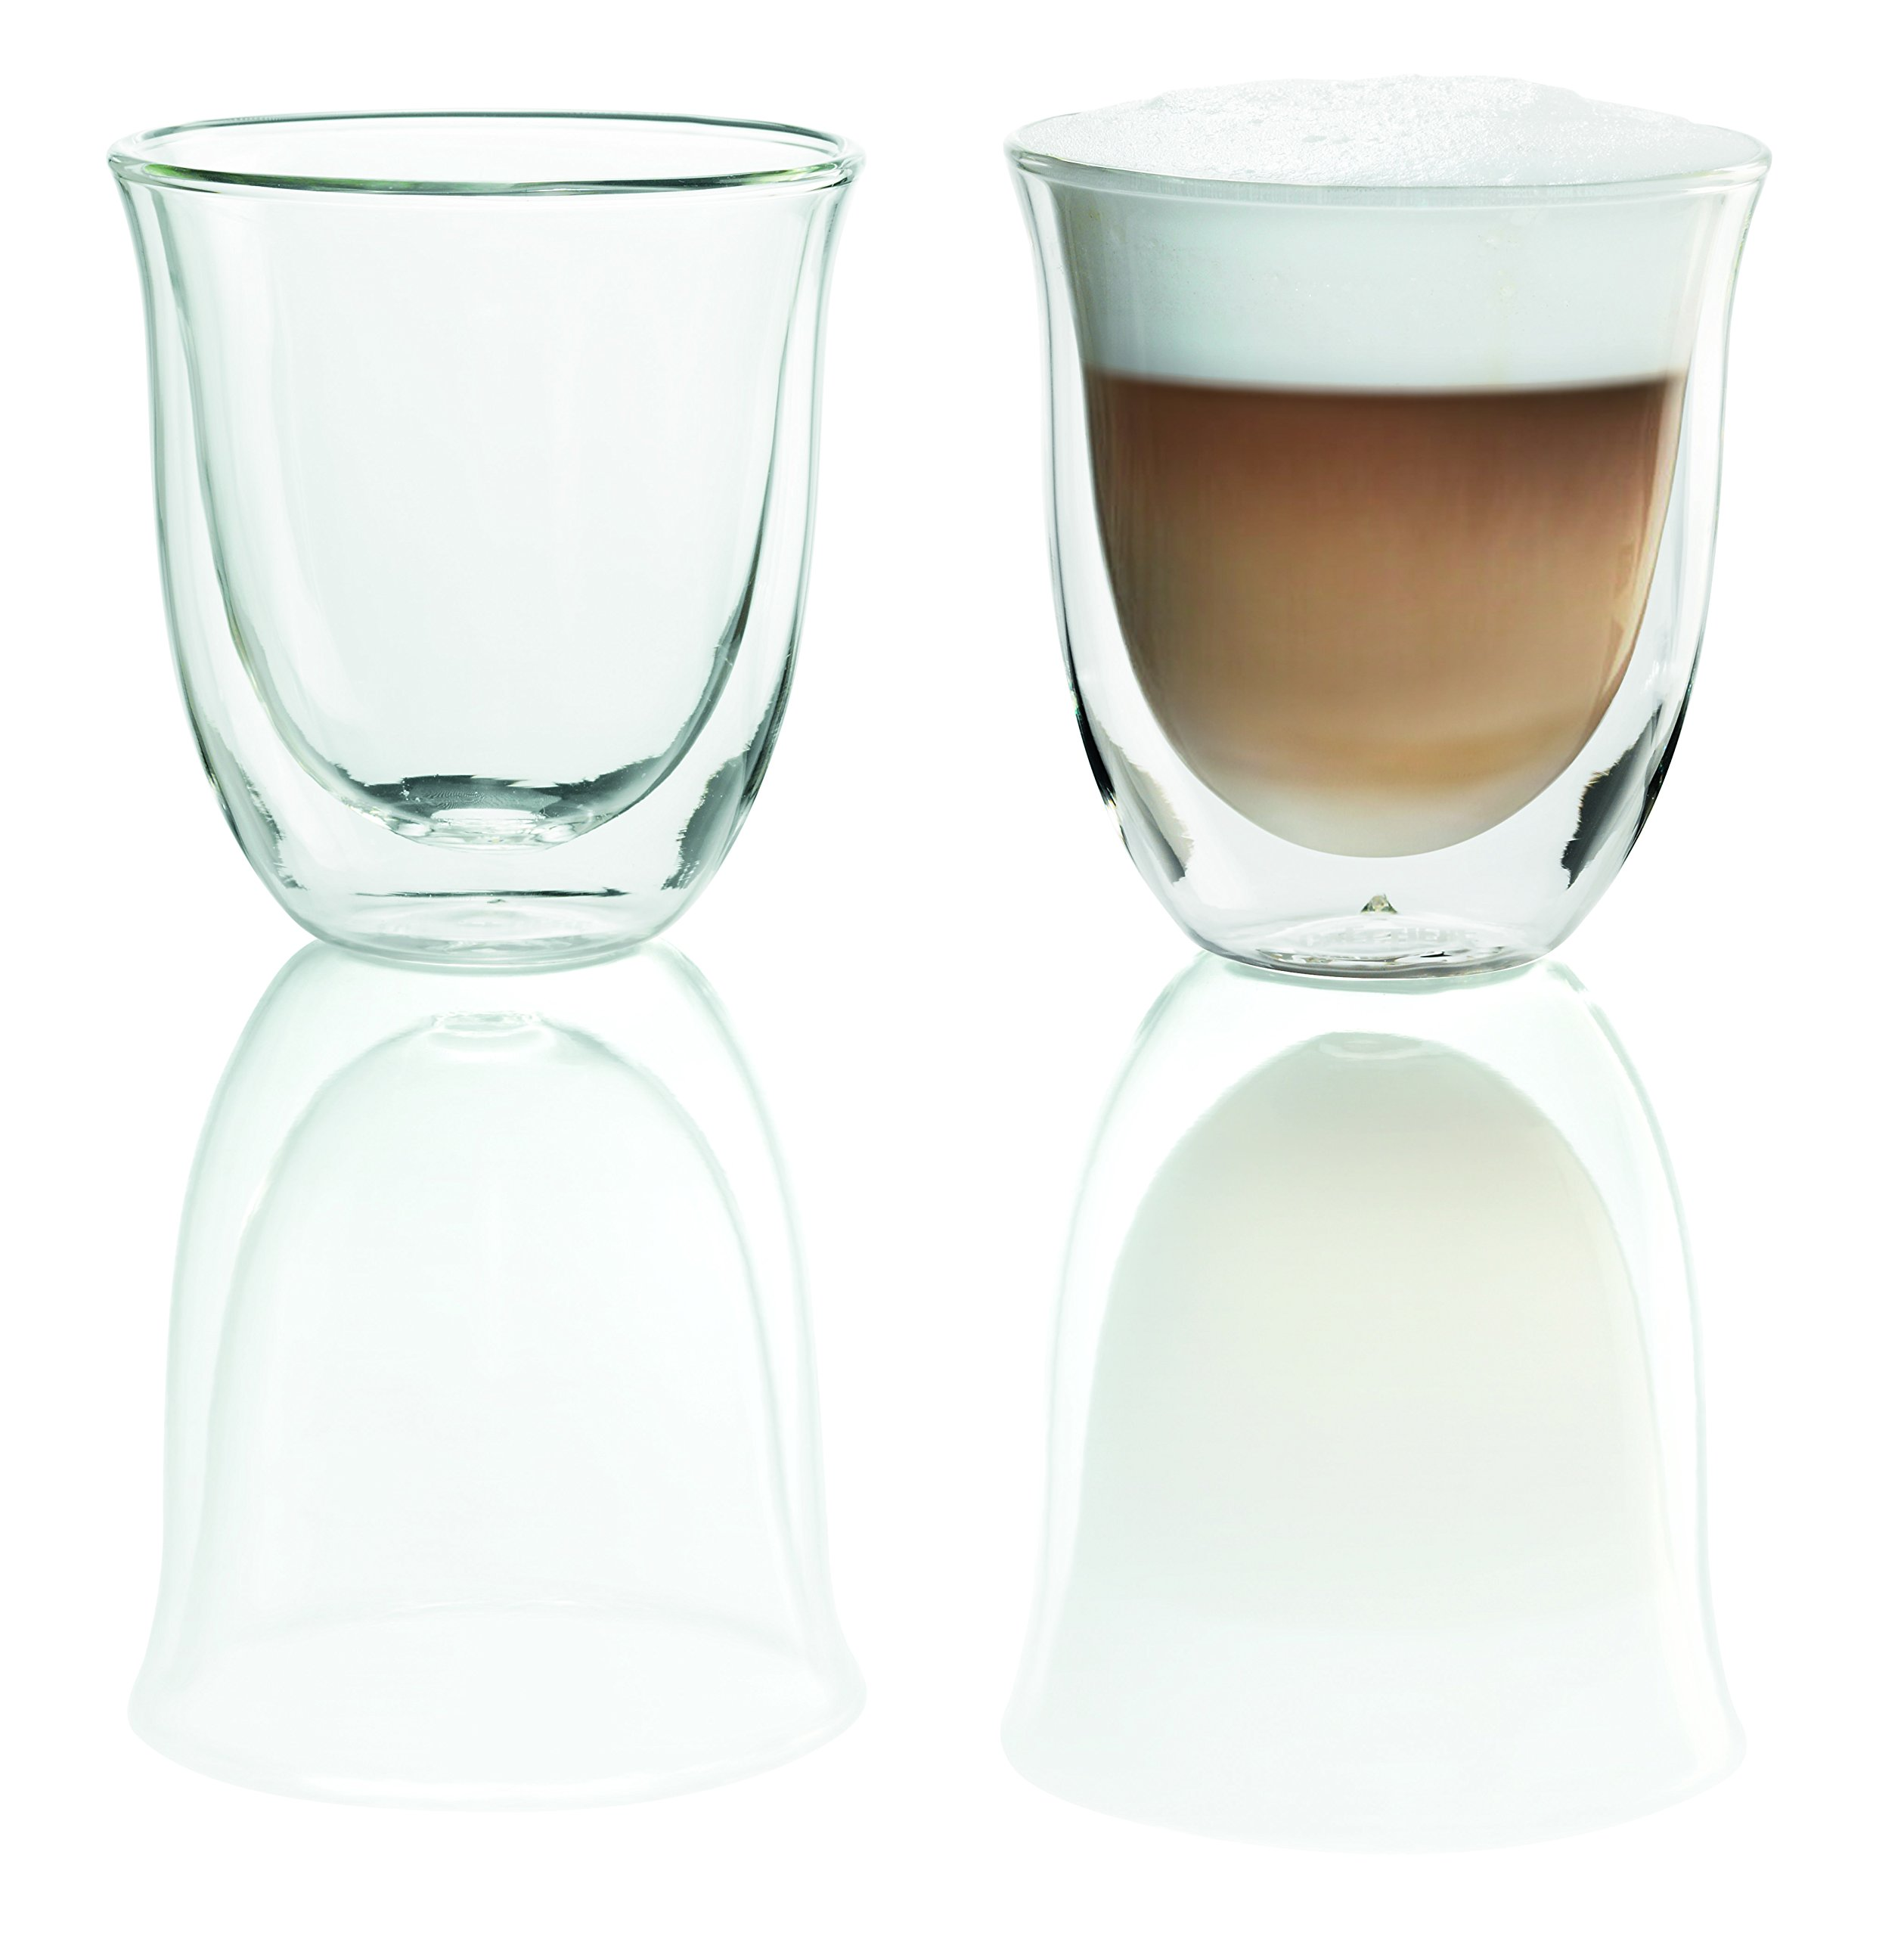 DeLonghi Double Walled Thermo Cappuccino Glasses, 6 fl oz, Set of 2